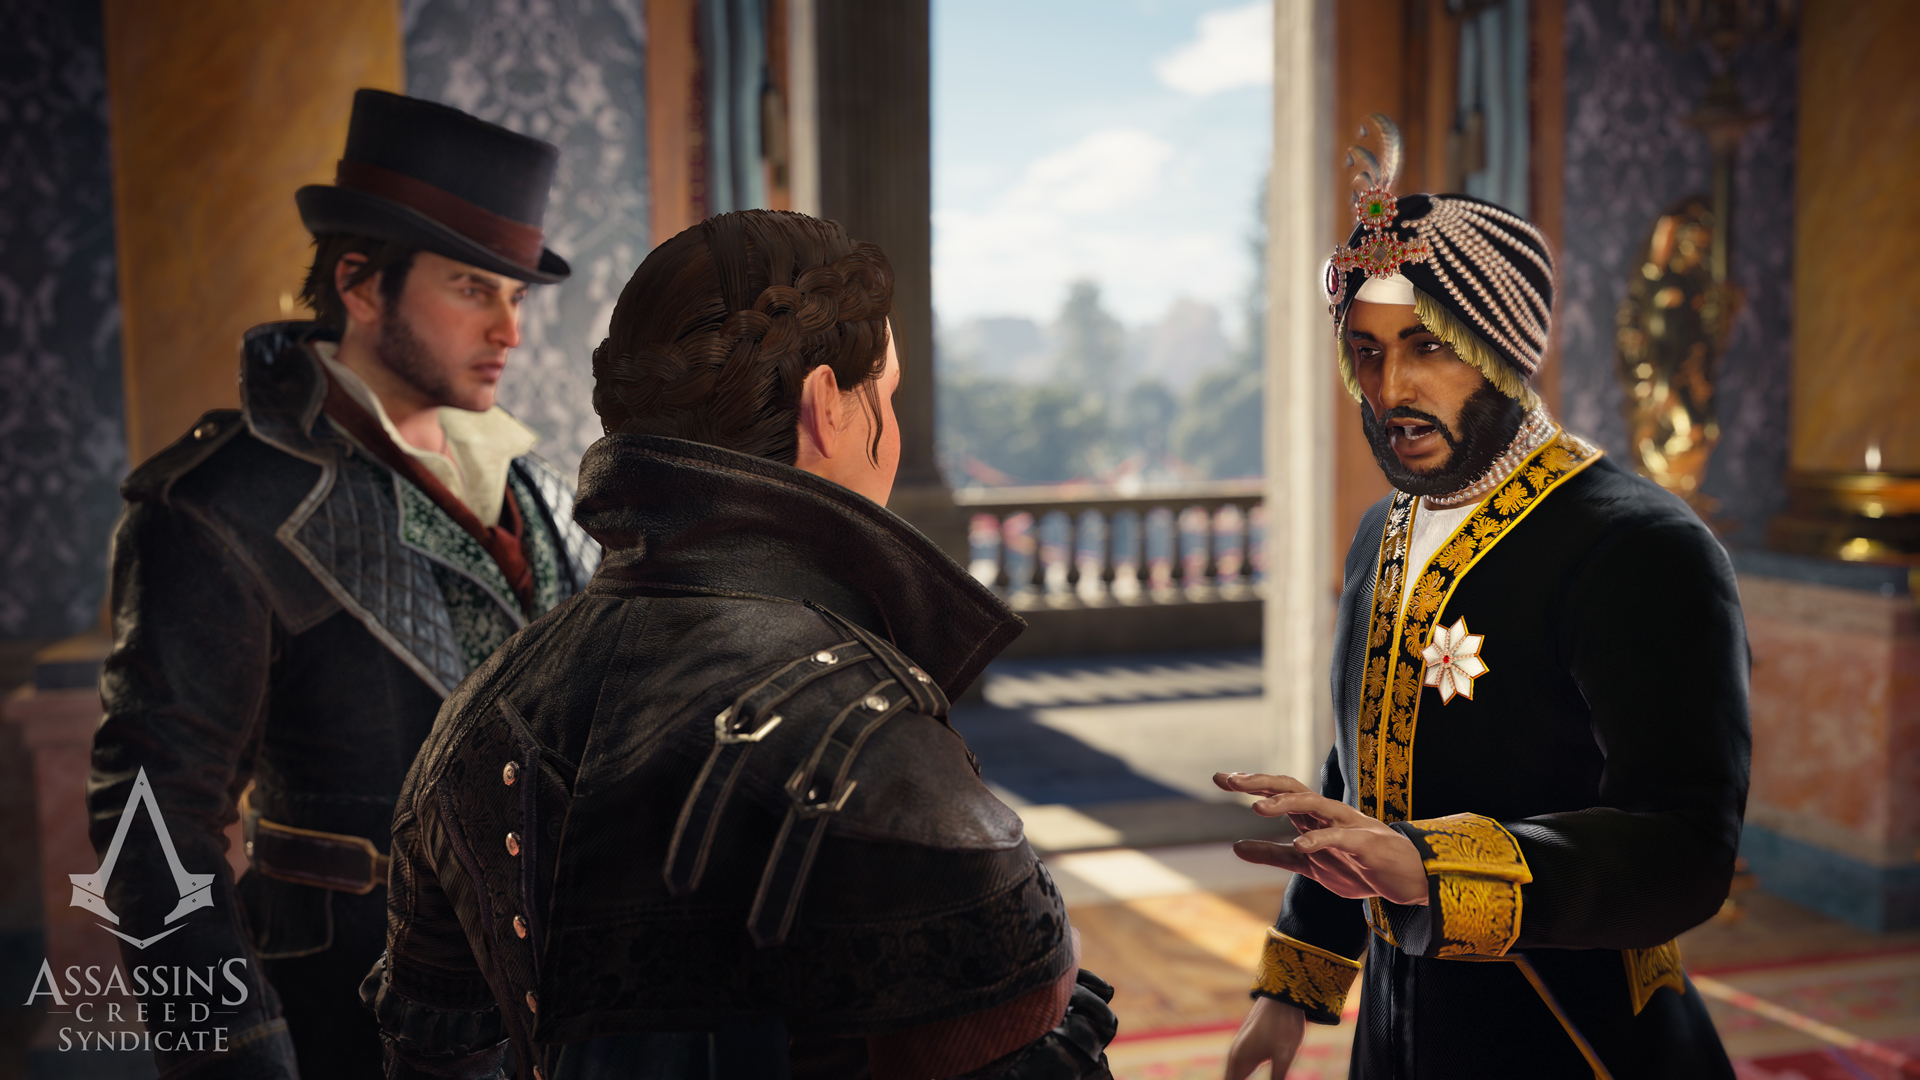 Take Jacob And Evie On Ten New Missions With The Last Maharaja Dlc For Assassin S Creed Syndicate Thexboxhub